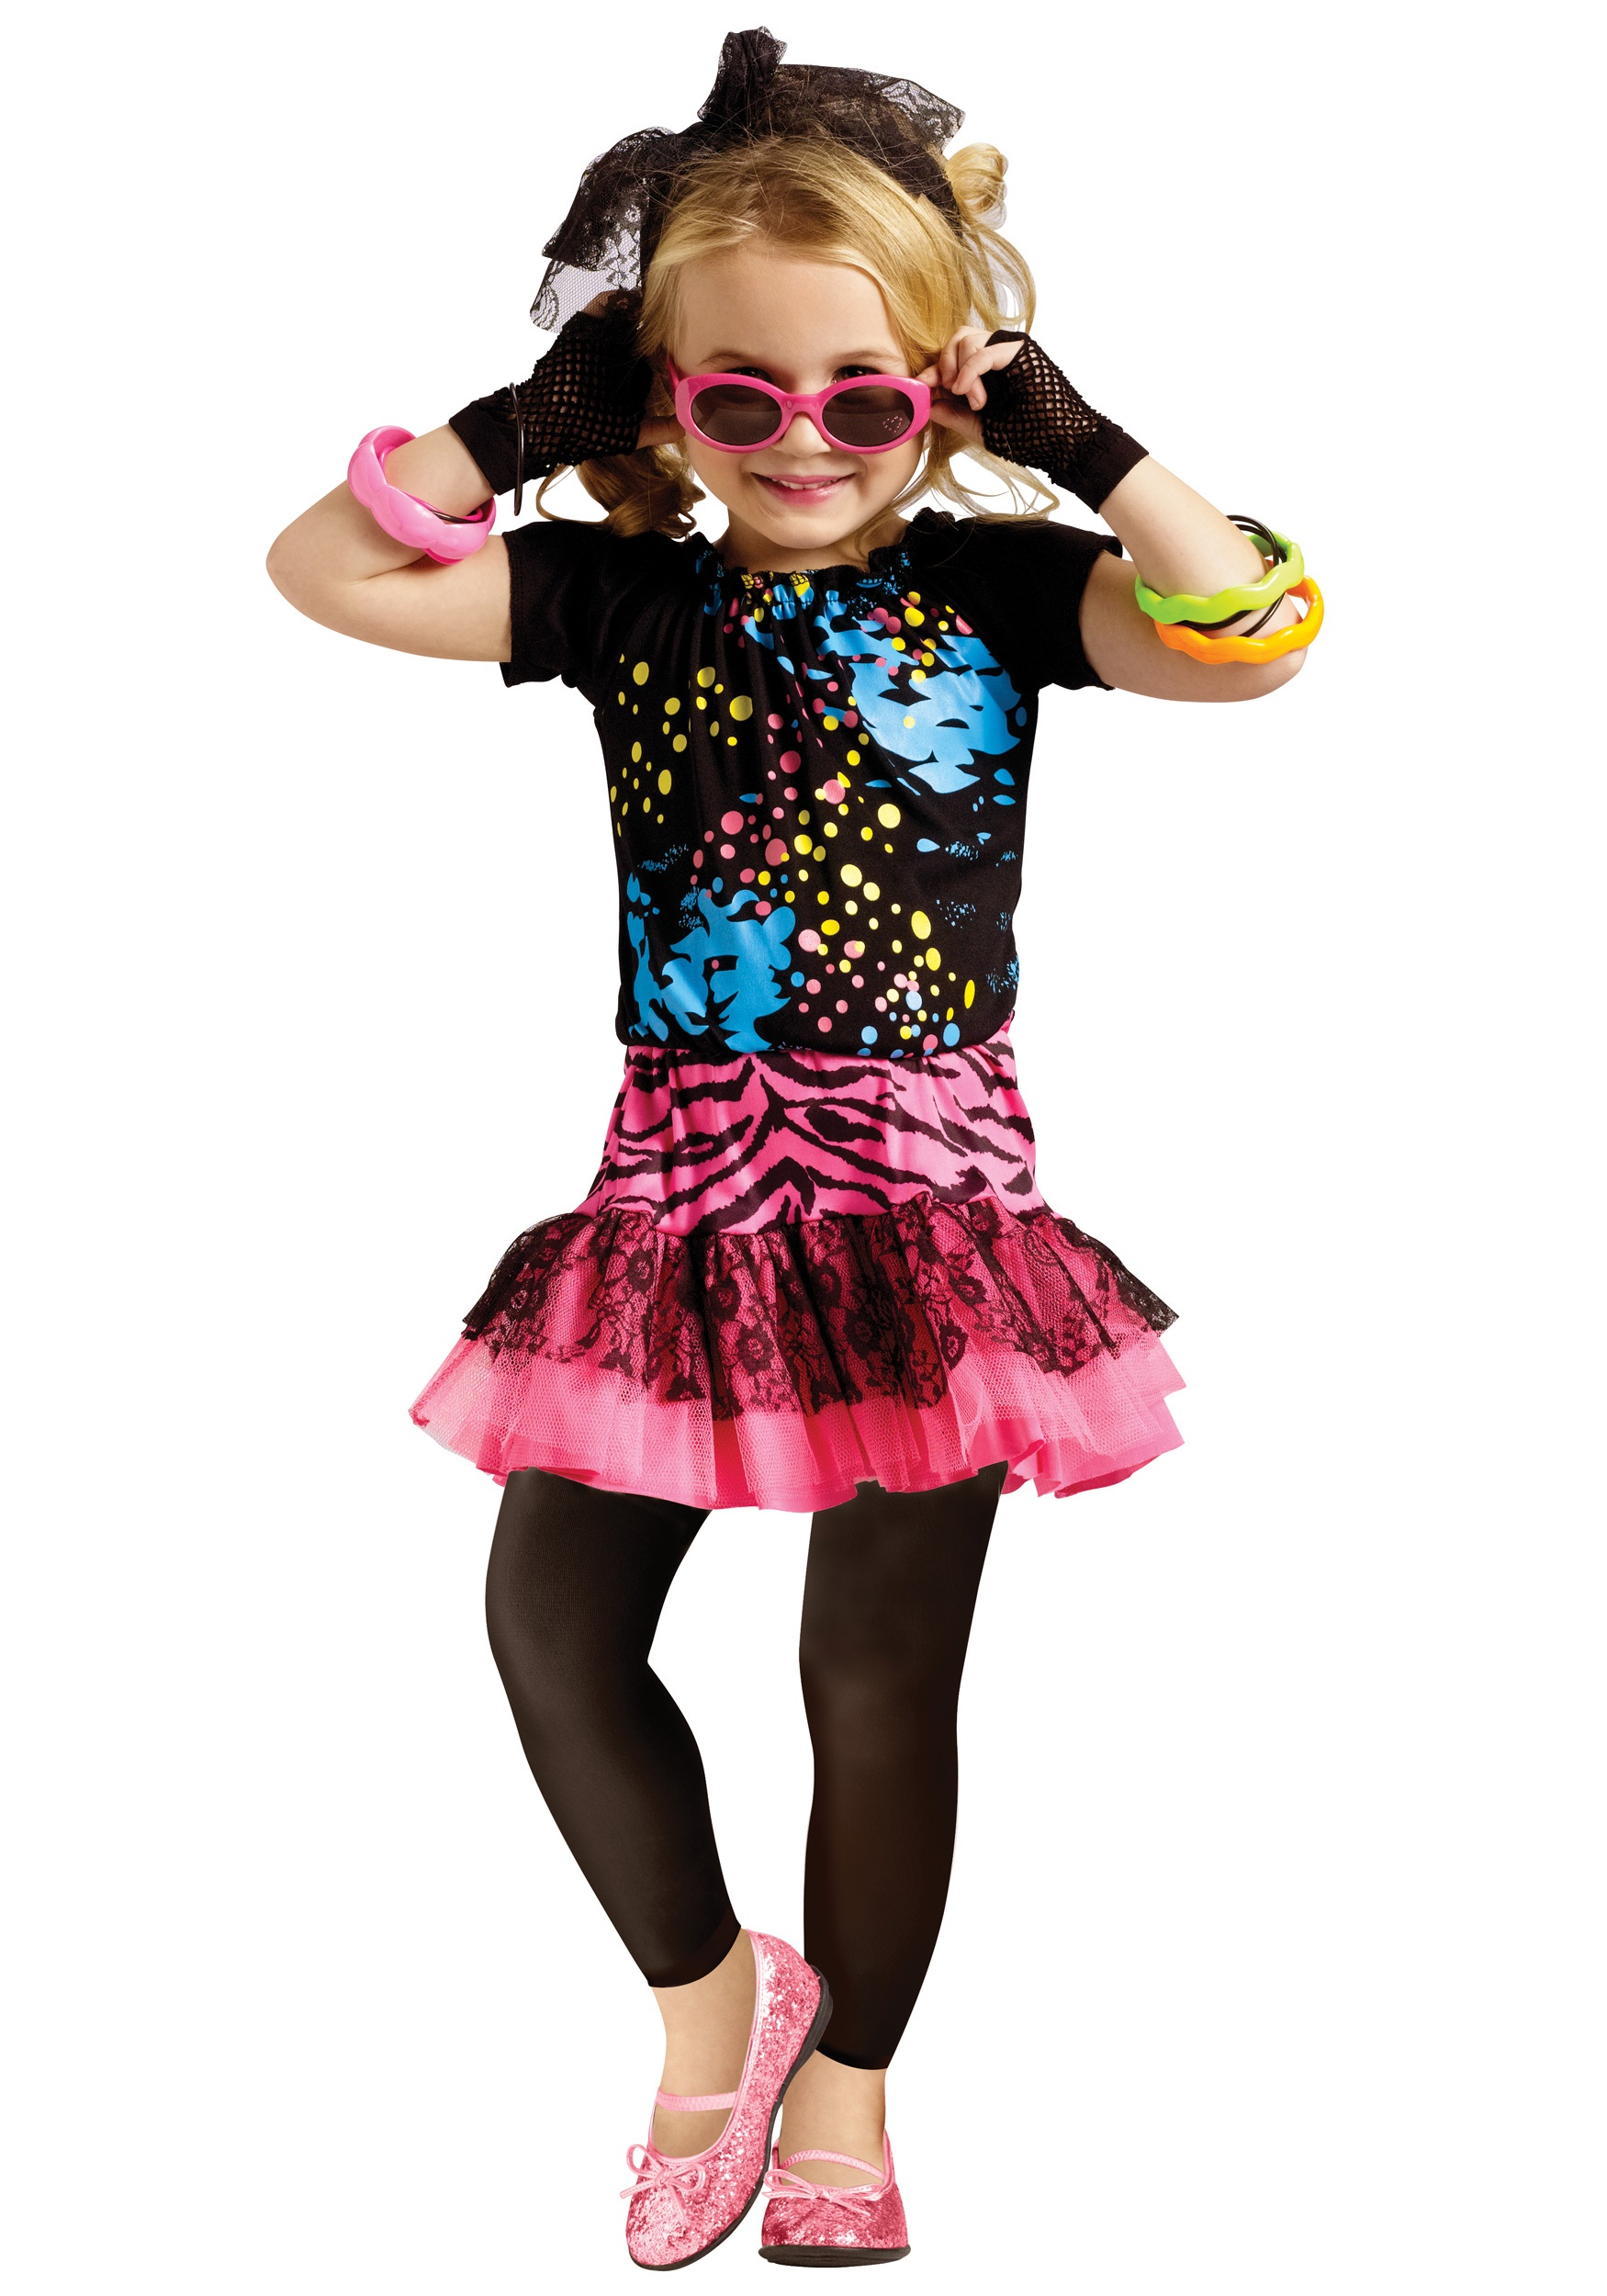 80s Pop Party Toddler Costume  sc 1 st  Halloween Costumes & 80s Pop Party Toddler Costume - Halloween Costumes